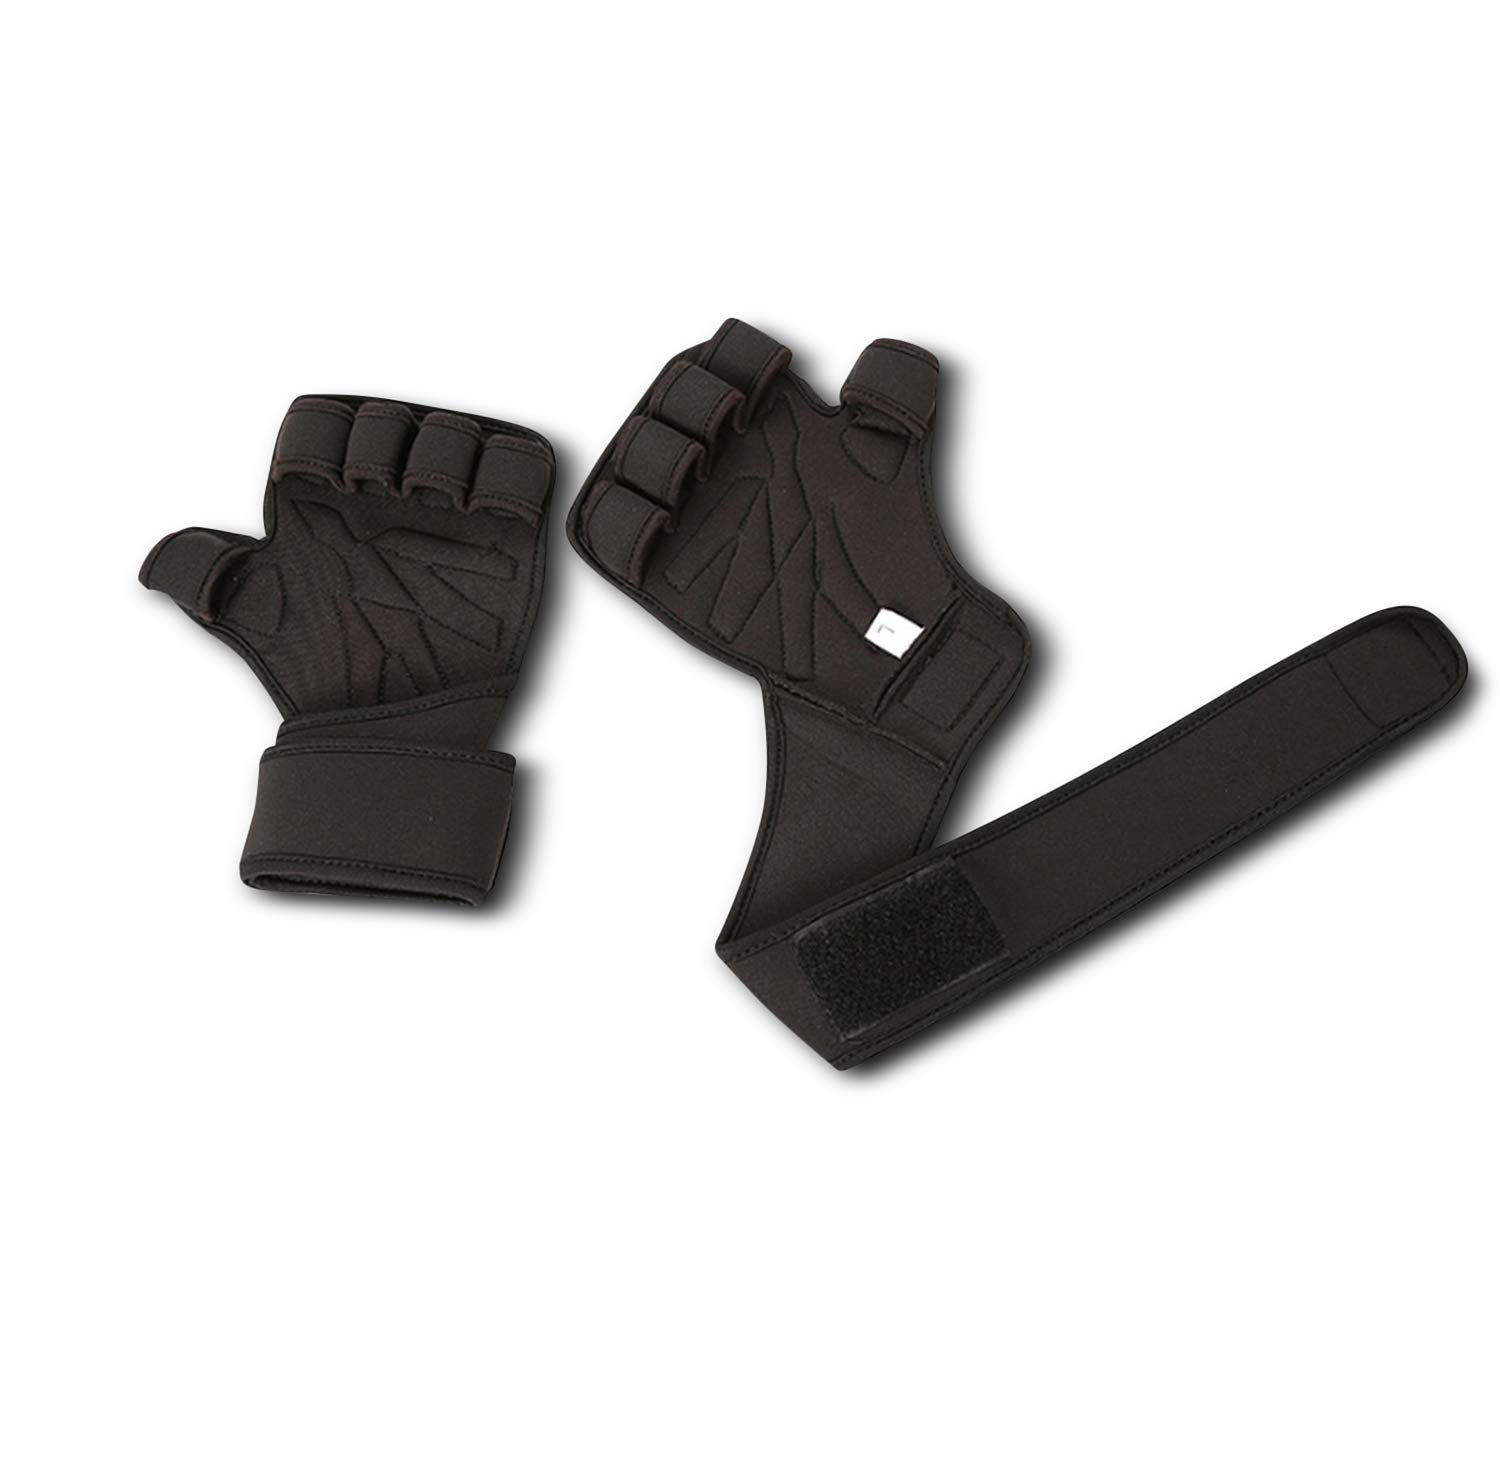 Fingerless Weight Lifting Gloves Pair Mens /& Womens Power Lifting Strength Training Workouts Premium Quality Neopren Gym Gloves Breathable /& Flexible Perfect for Bodybuilding Cross Fit Coop